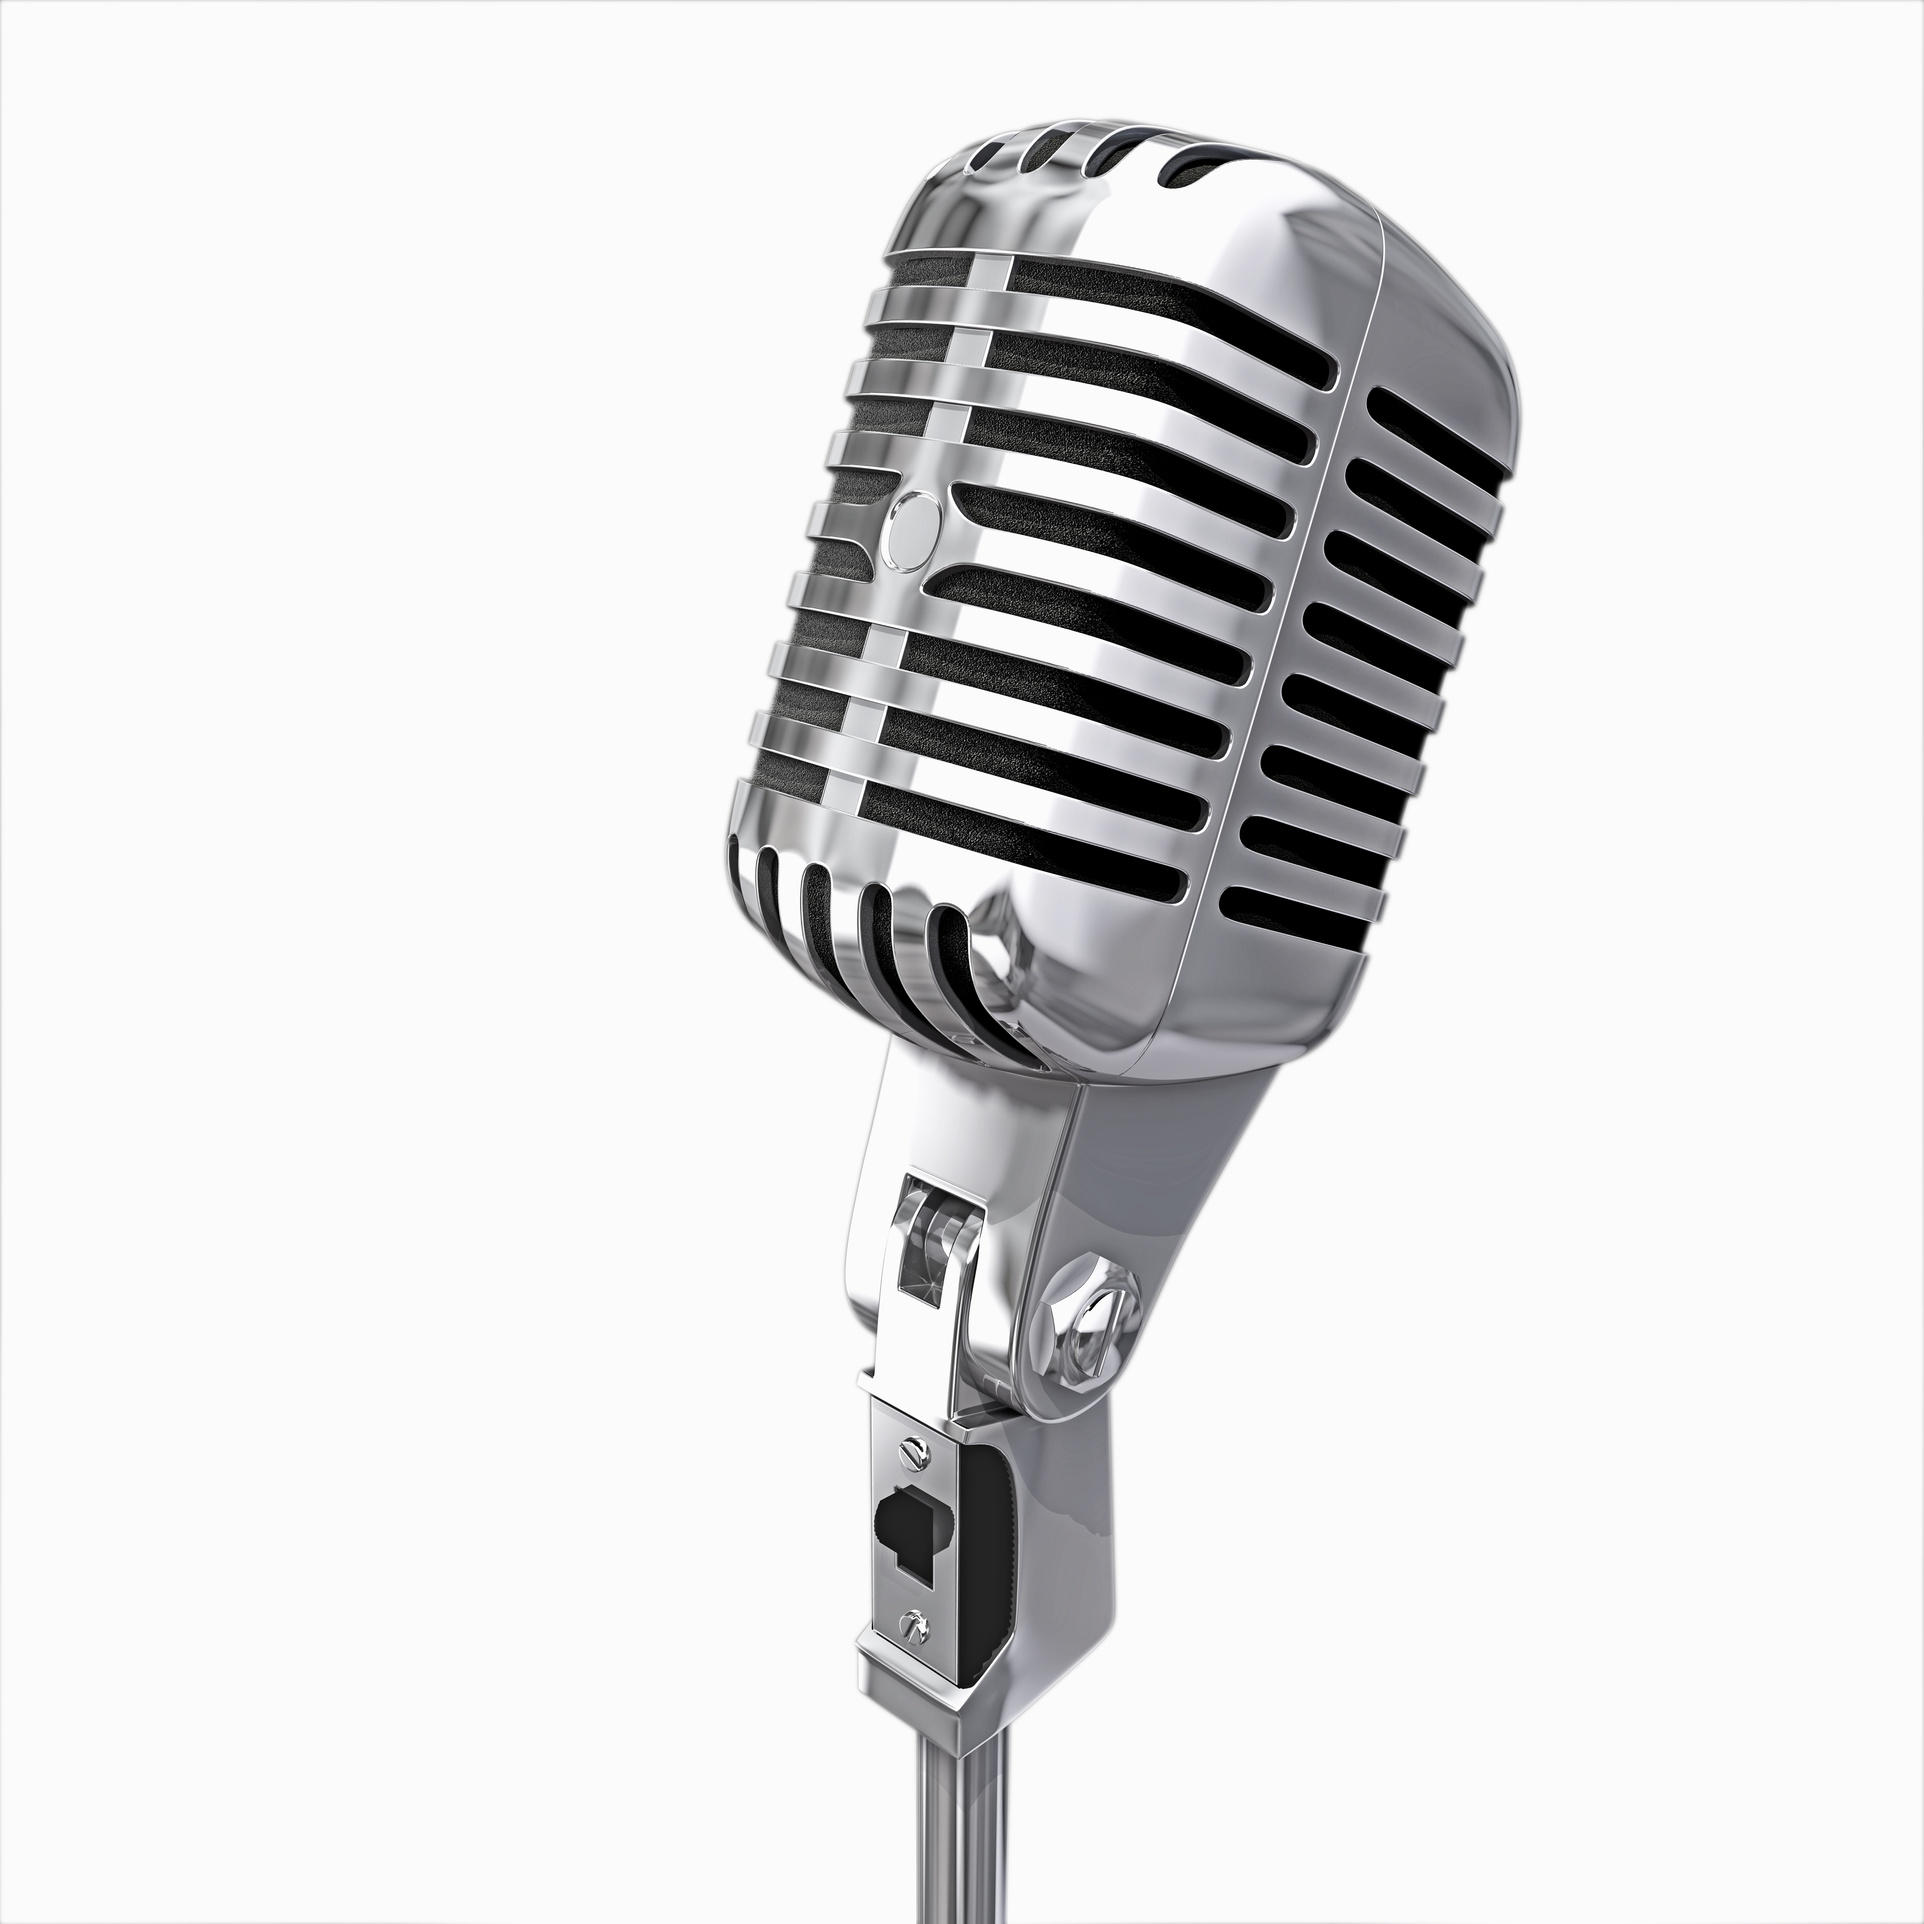 Old Grey Microphone Drawing Free Image Mic full sleeve tattoo design | busbones. https pixy org 4409533